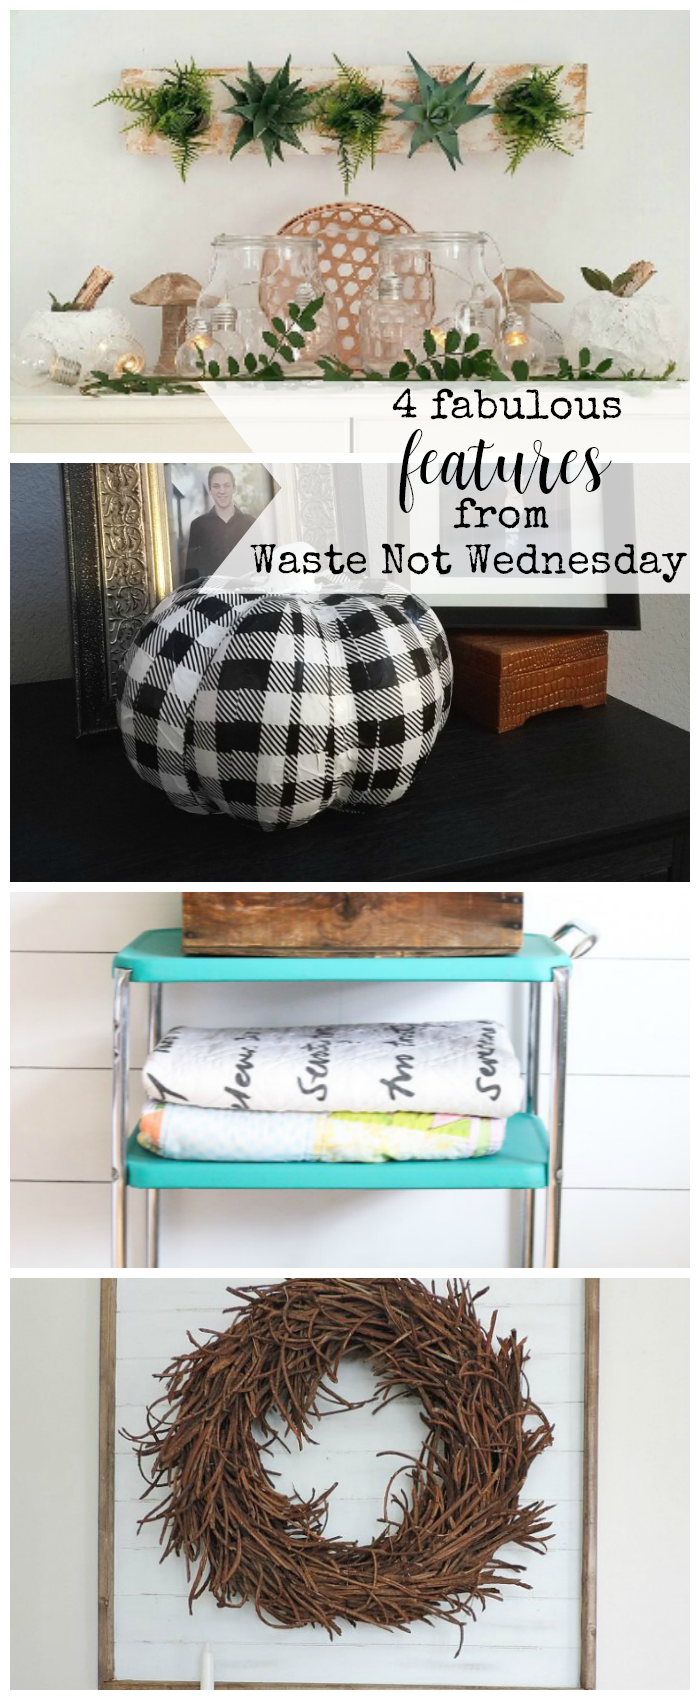 Features from our fun Waste Not Wednesday-72 DIY, Craft, Home Decor and Recipe party this week! Be sure to join us and share your DIY, Craft, Home Decor and favourite recipes! | www.raggedy-bits.com | www.mythriftyhouse.com | www.salvagesisterandmister.com |